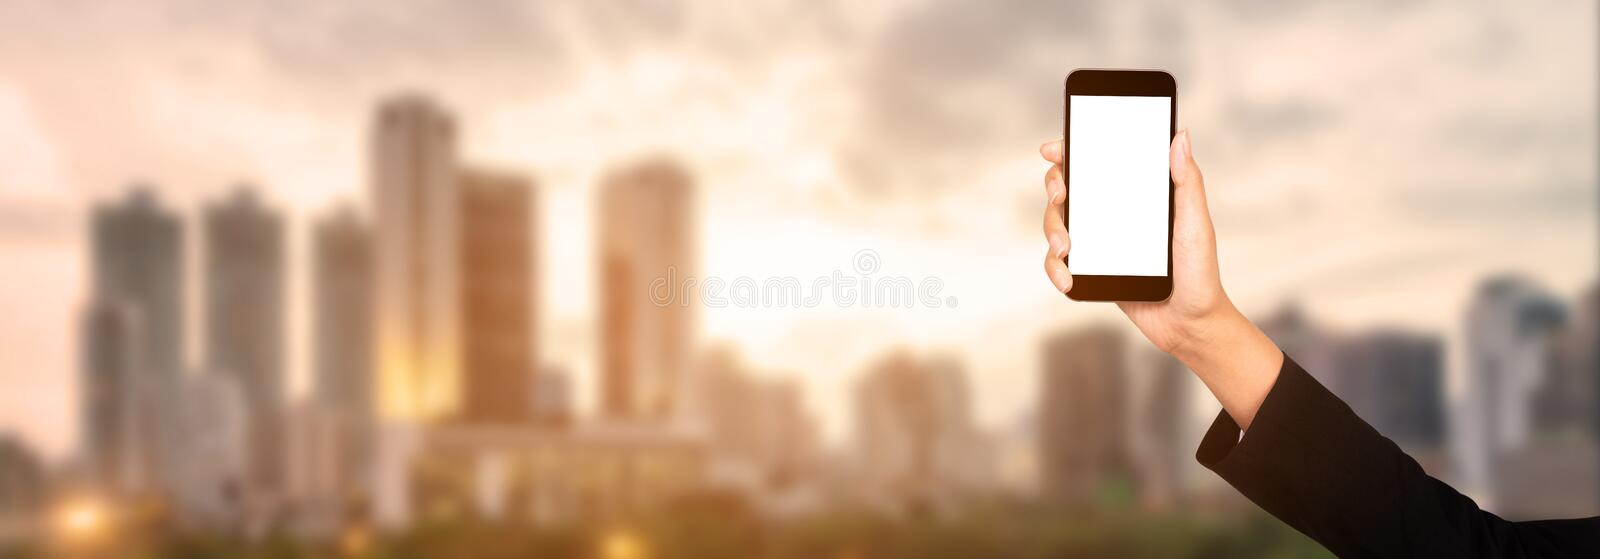 Businesswoman hand using mobile smartphone with white screen, ci stock image